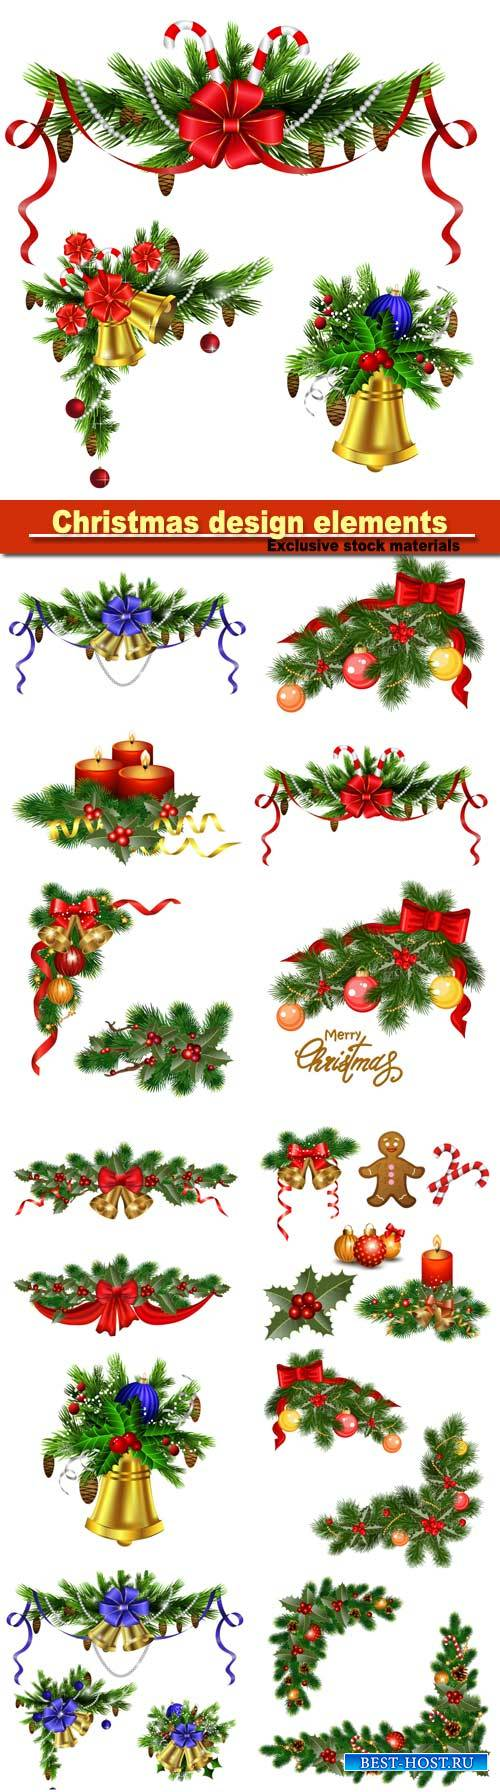 Christmas design elements, background with fir tree, holly and decorative e ...